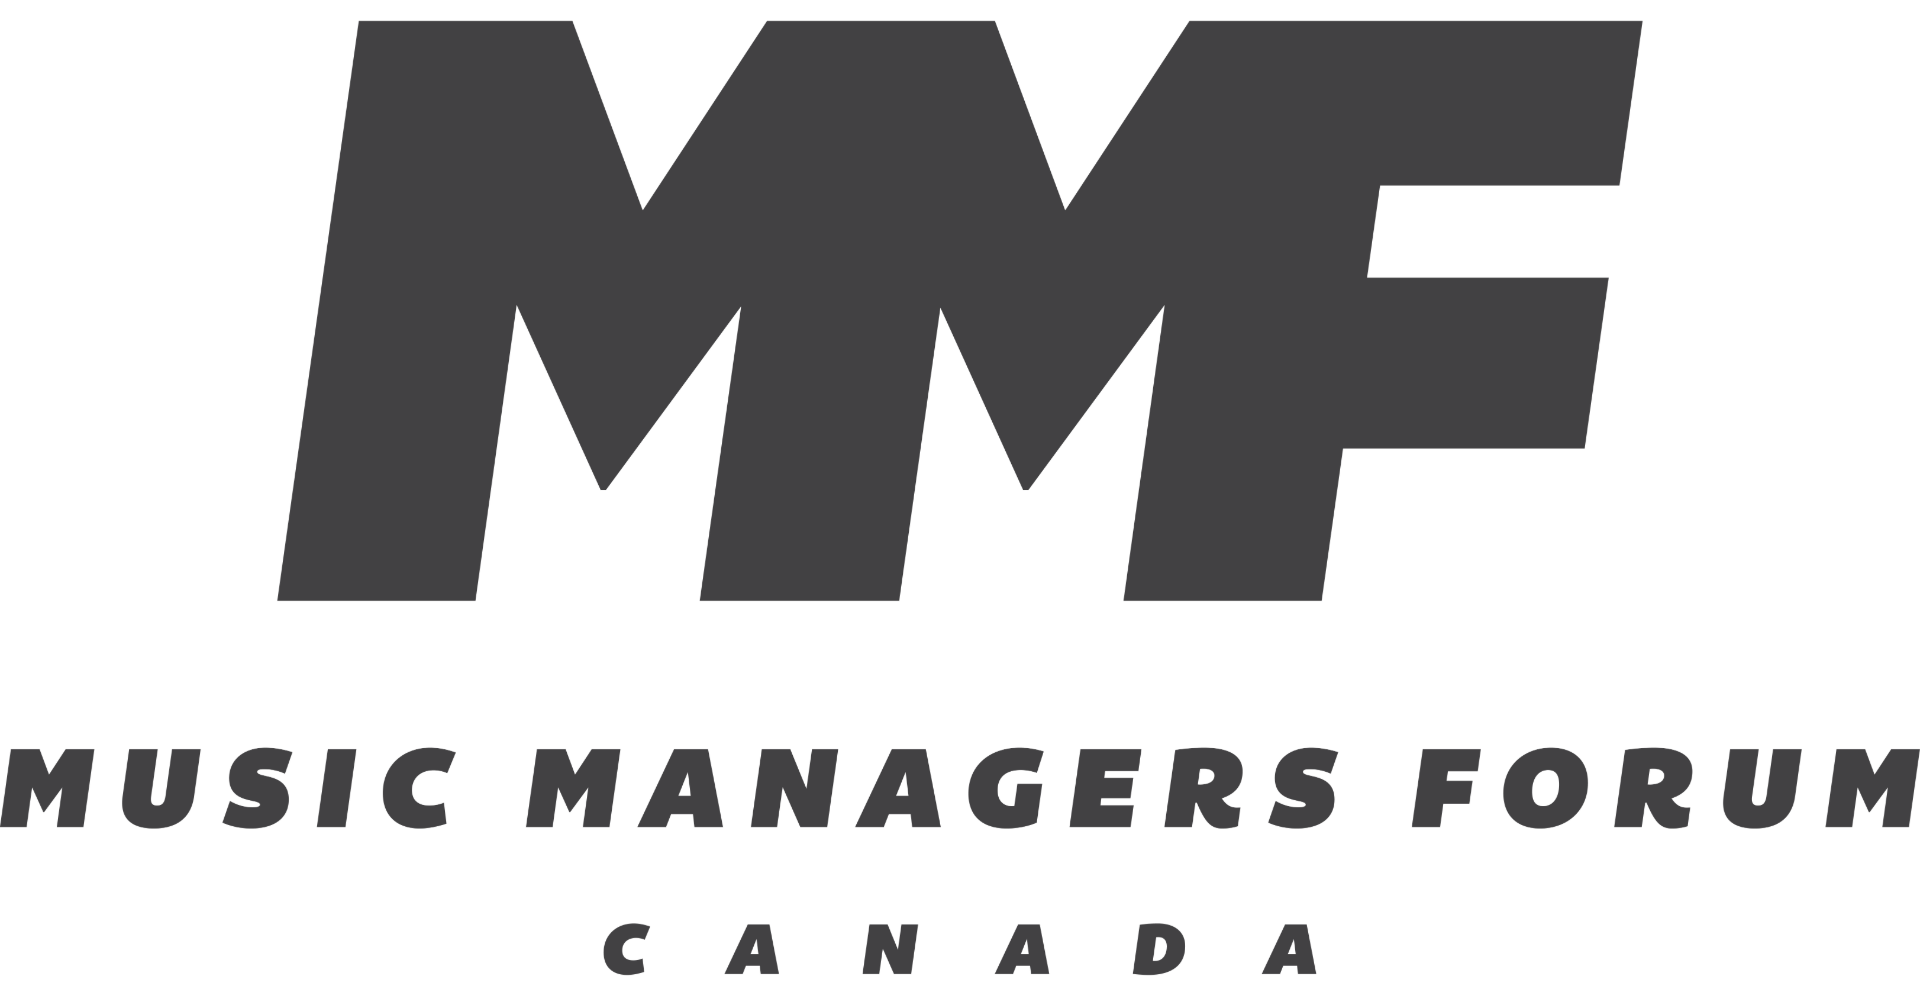 Music Managers Forum Canada.png